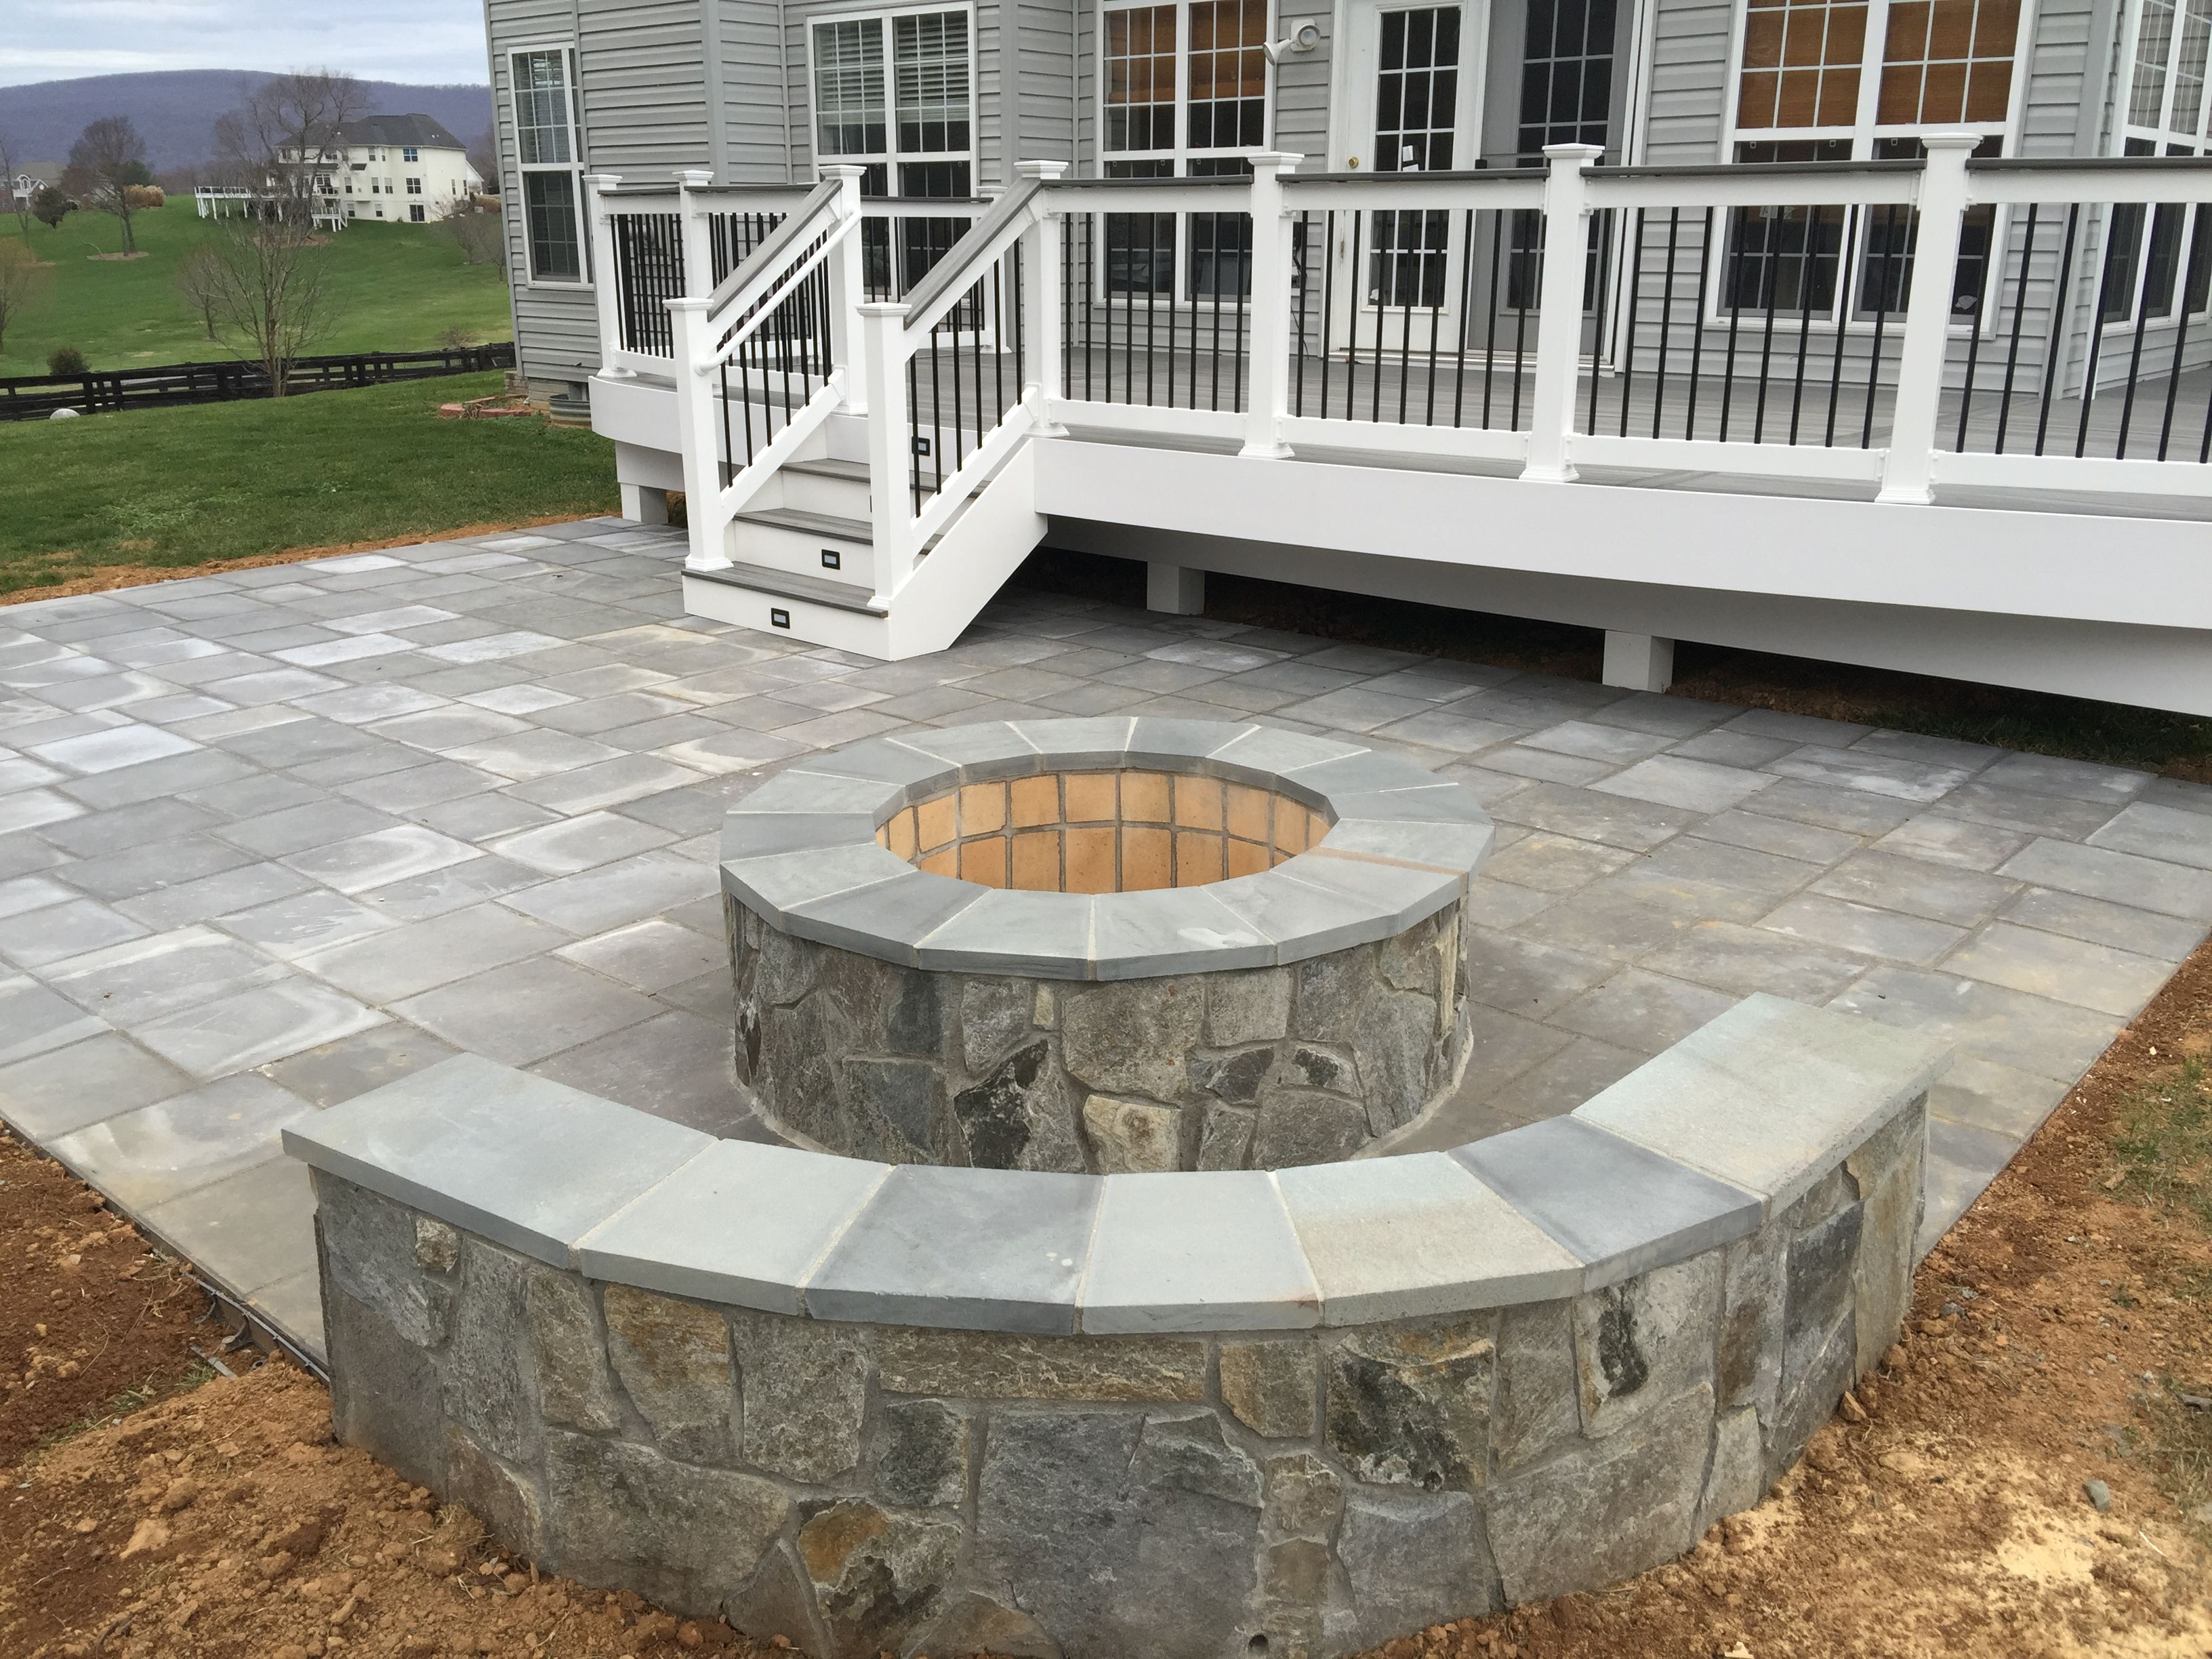 A beautiful paver patio with stone seating walls and a for Back patio design ideas